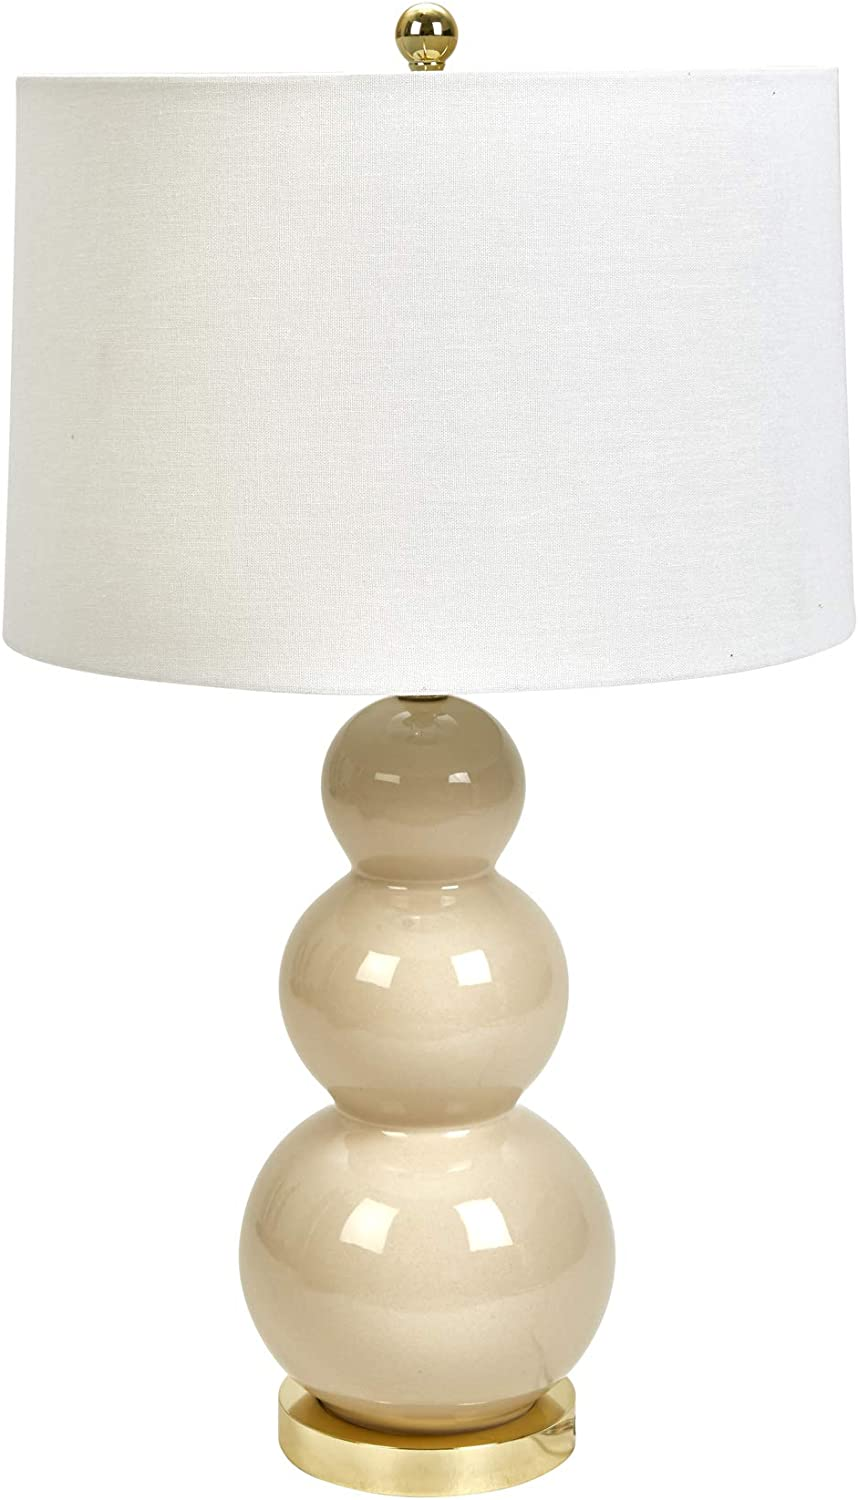 "Sagebrook Home 50045-07 Ceramic Triple Gourd Table, Cream, 30"" Lamps, Ivory/Beige"